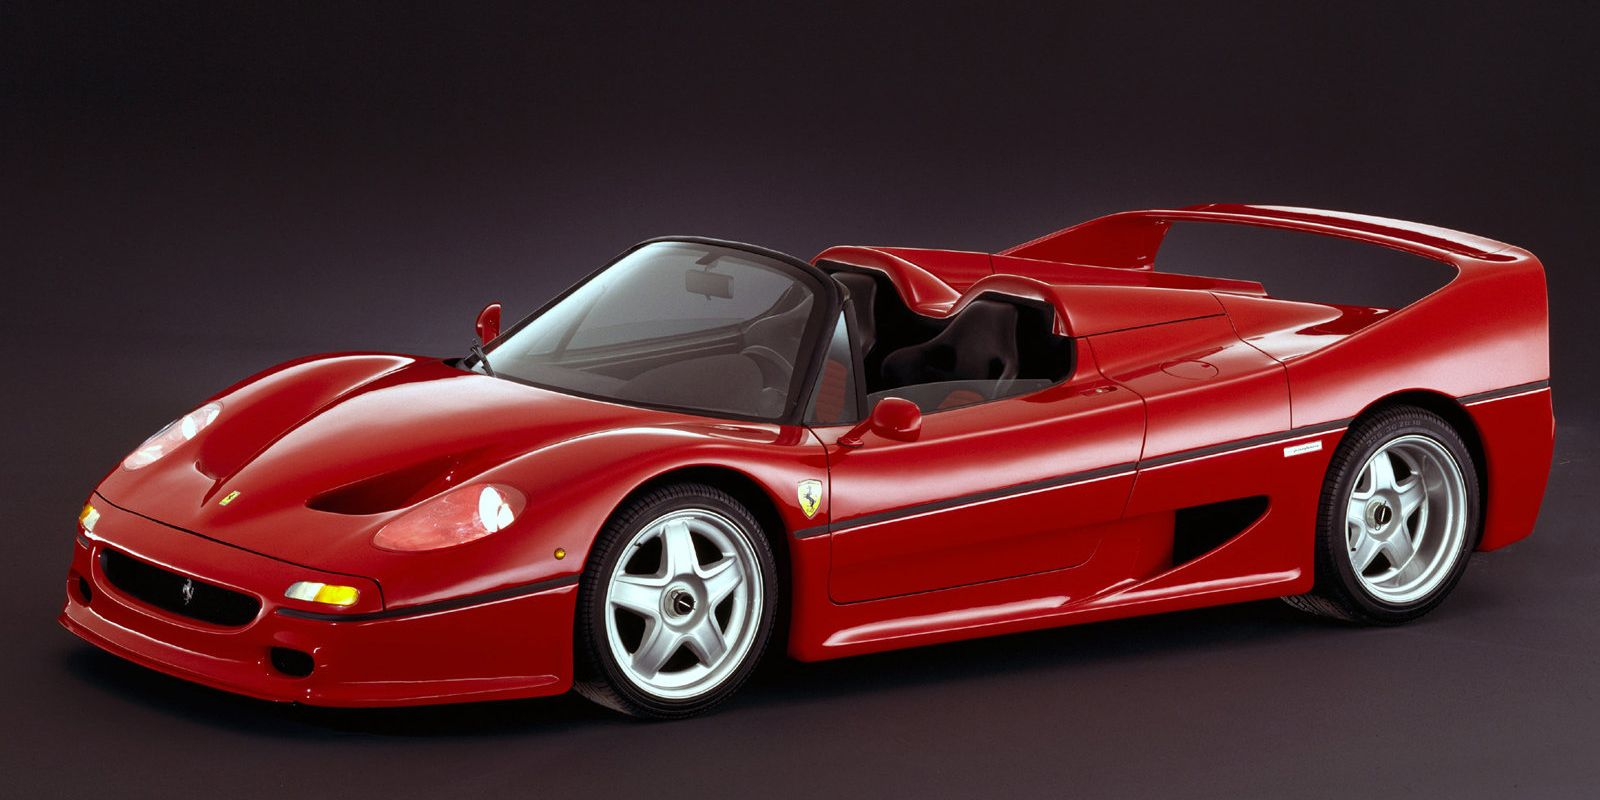 These Are Ten of the Coolest Supercars of the 1990s